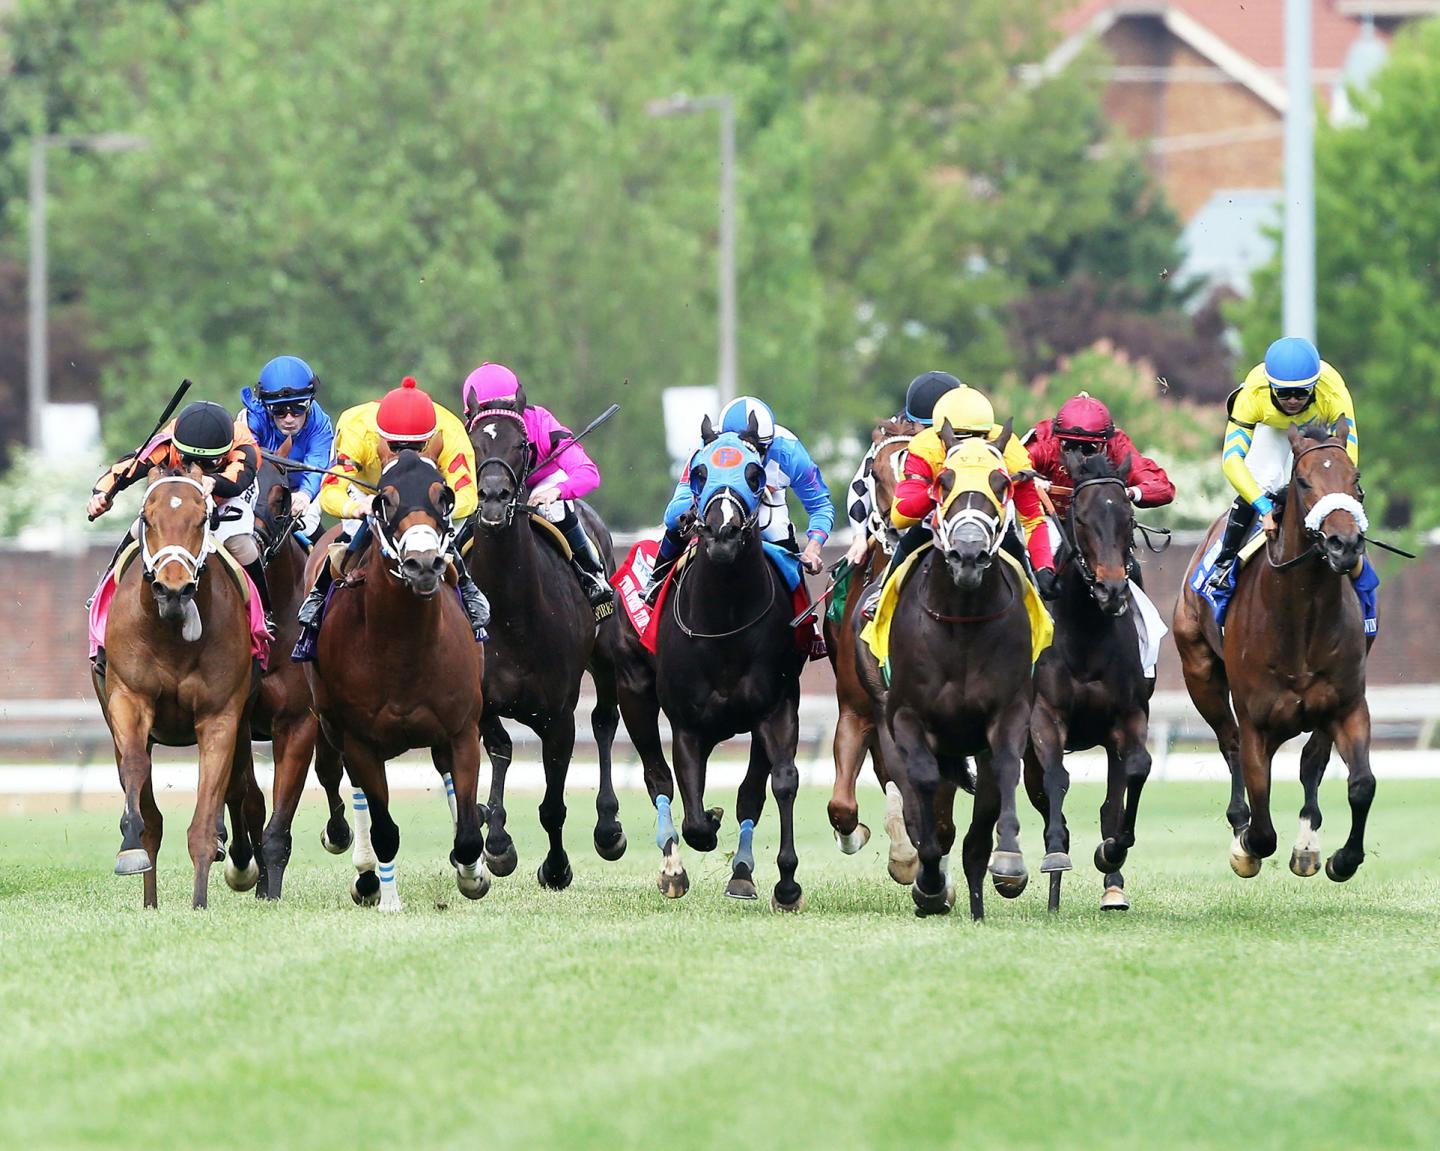 FAST-BOAT---The-Twin-Spires-Turf-Sprint-G2---04-30-21---R10---CD---Head-On-01